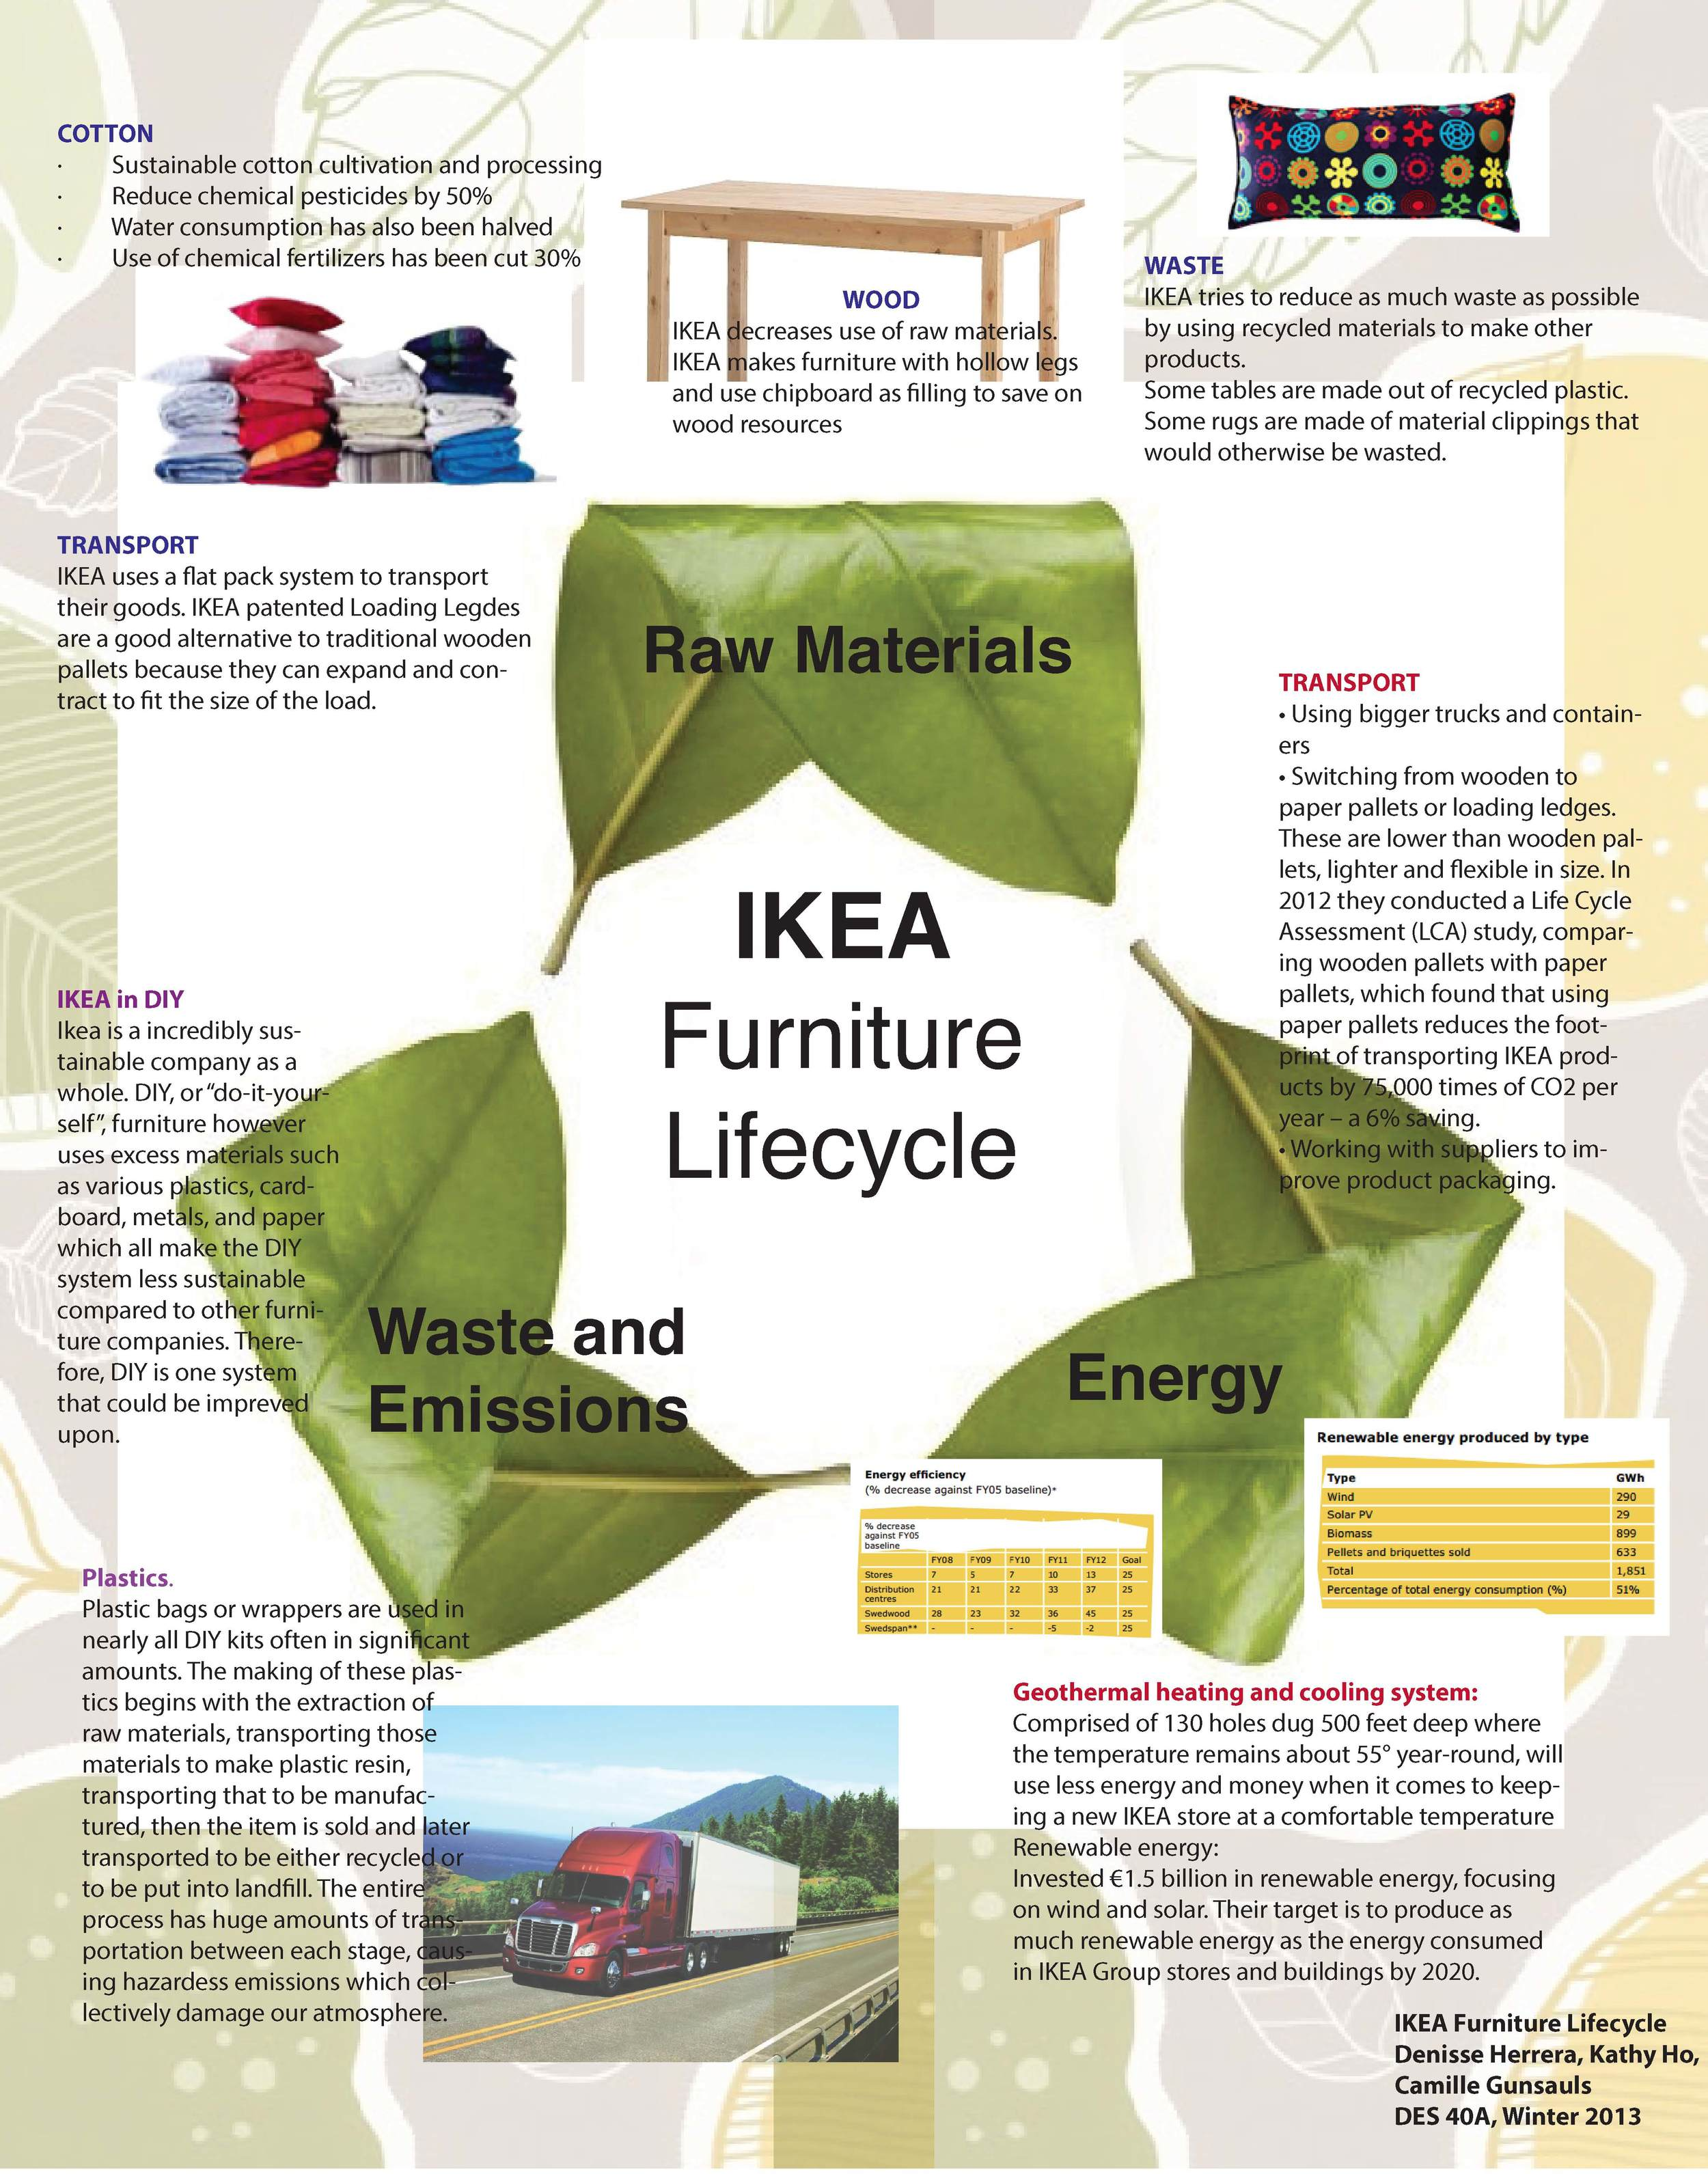 IKEA Furniture Life Cycle